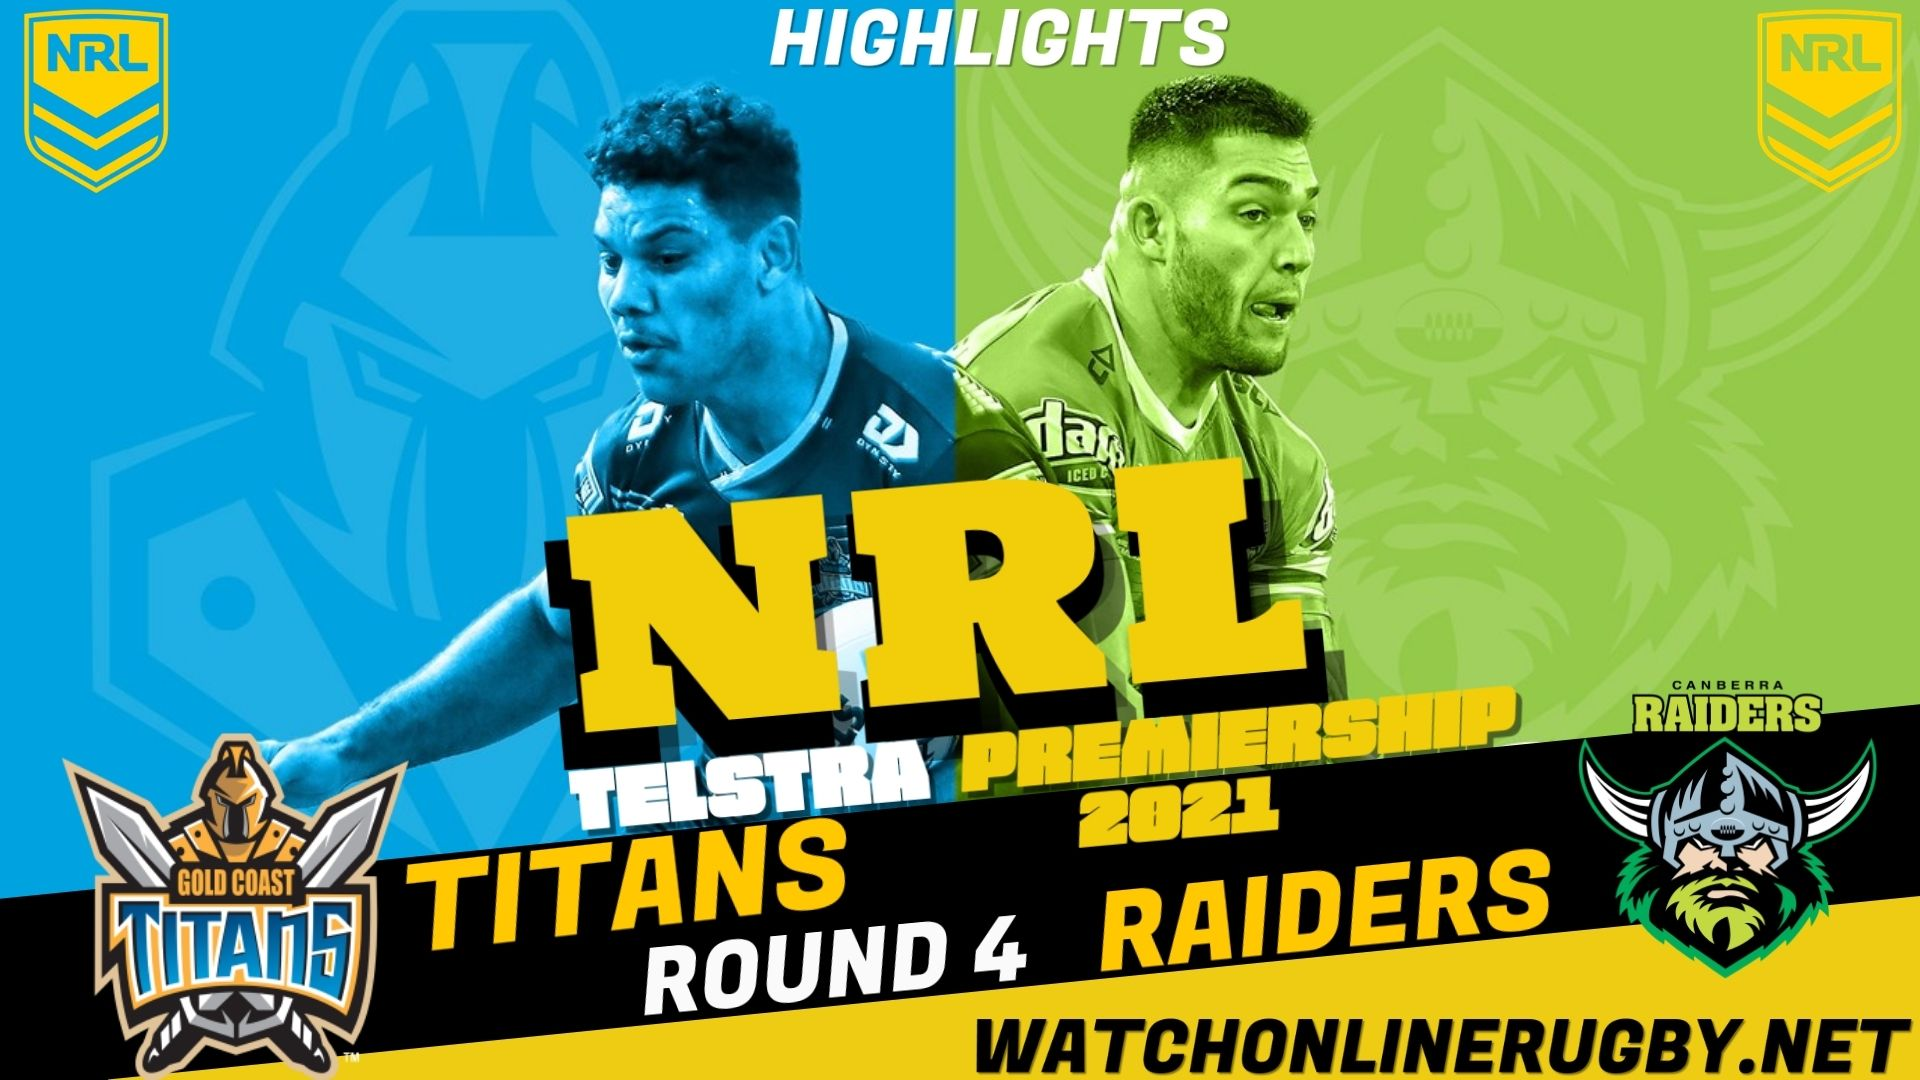 Titans Vs Raiders Highlights RD 4 NRL Rugby